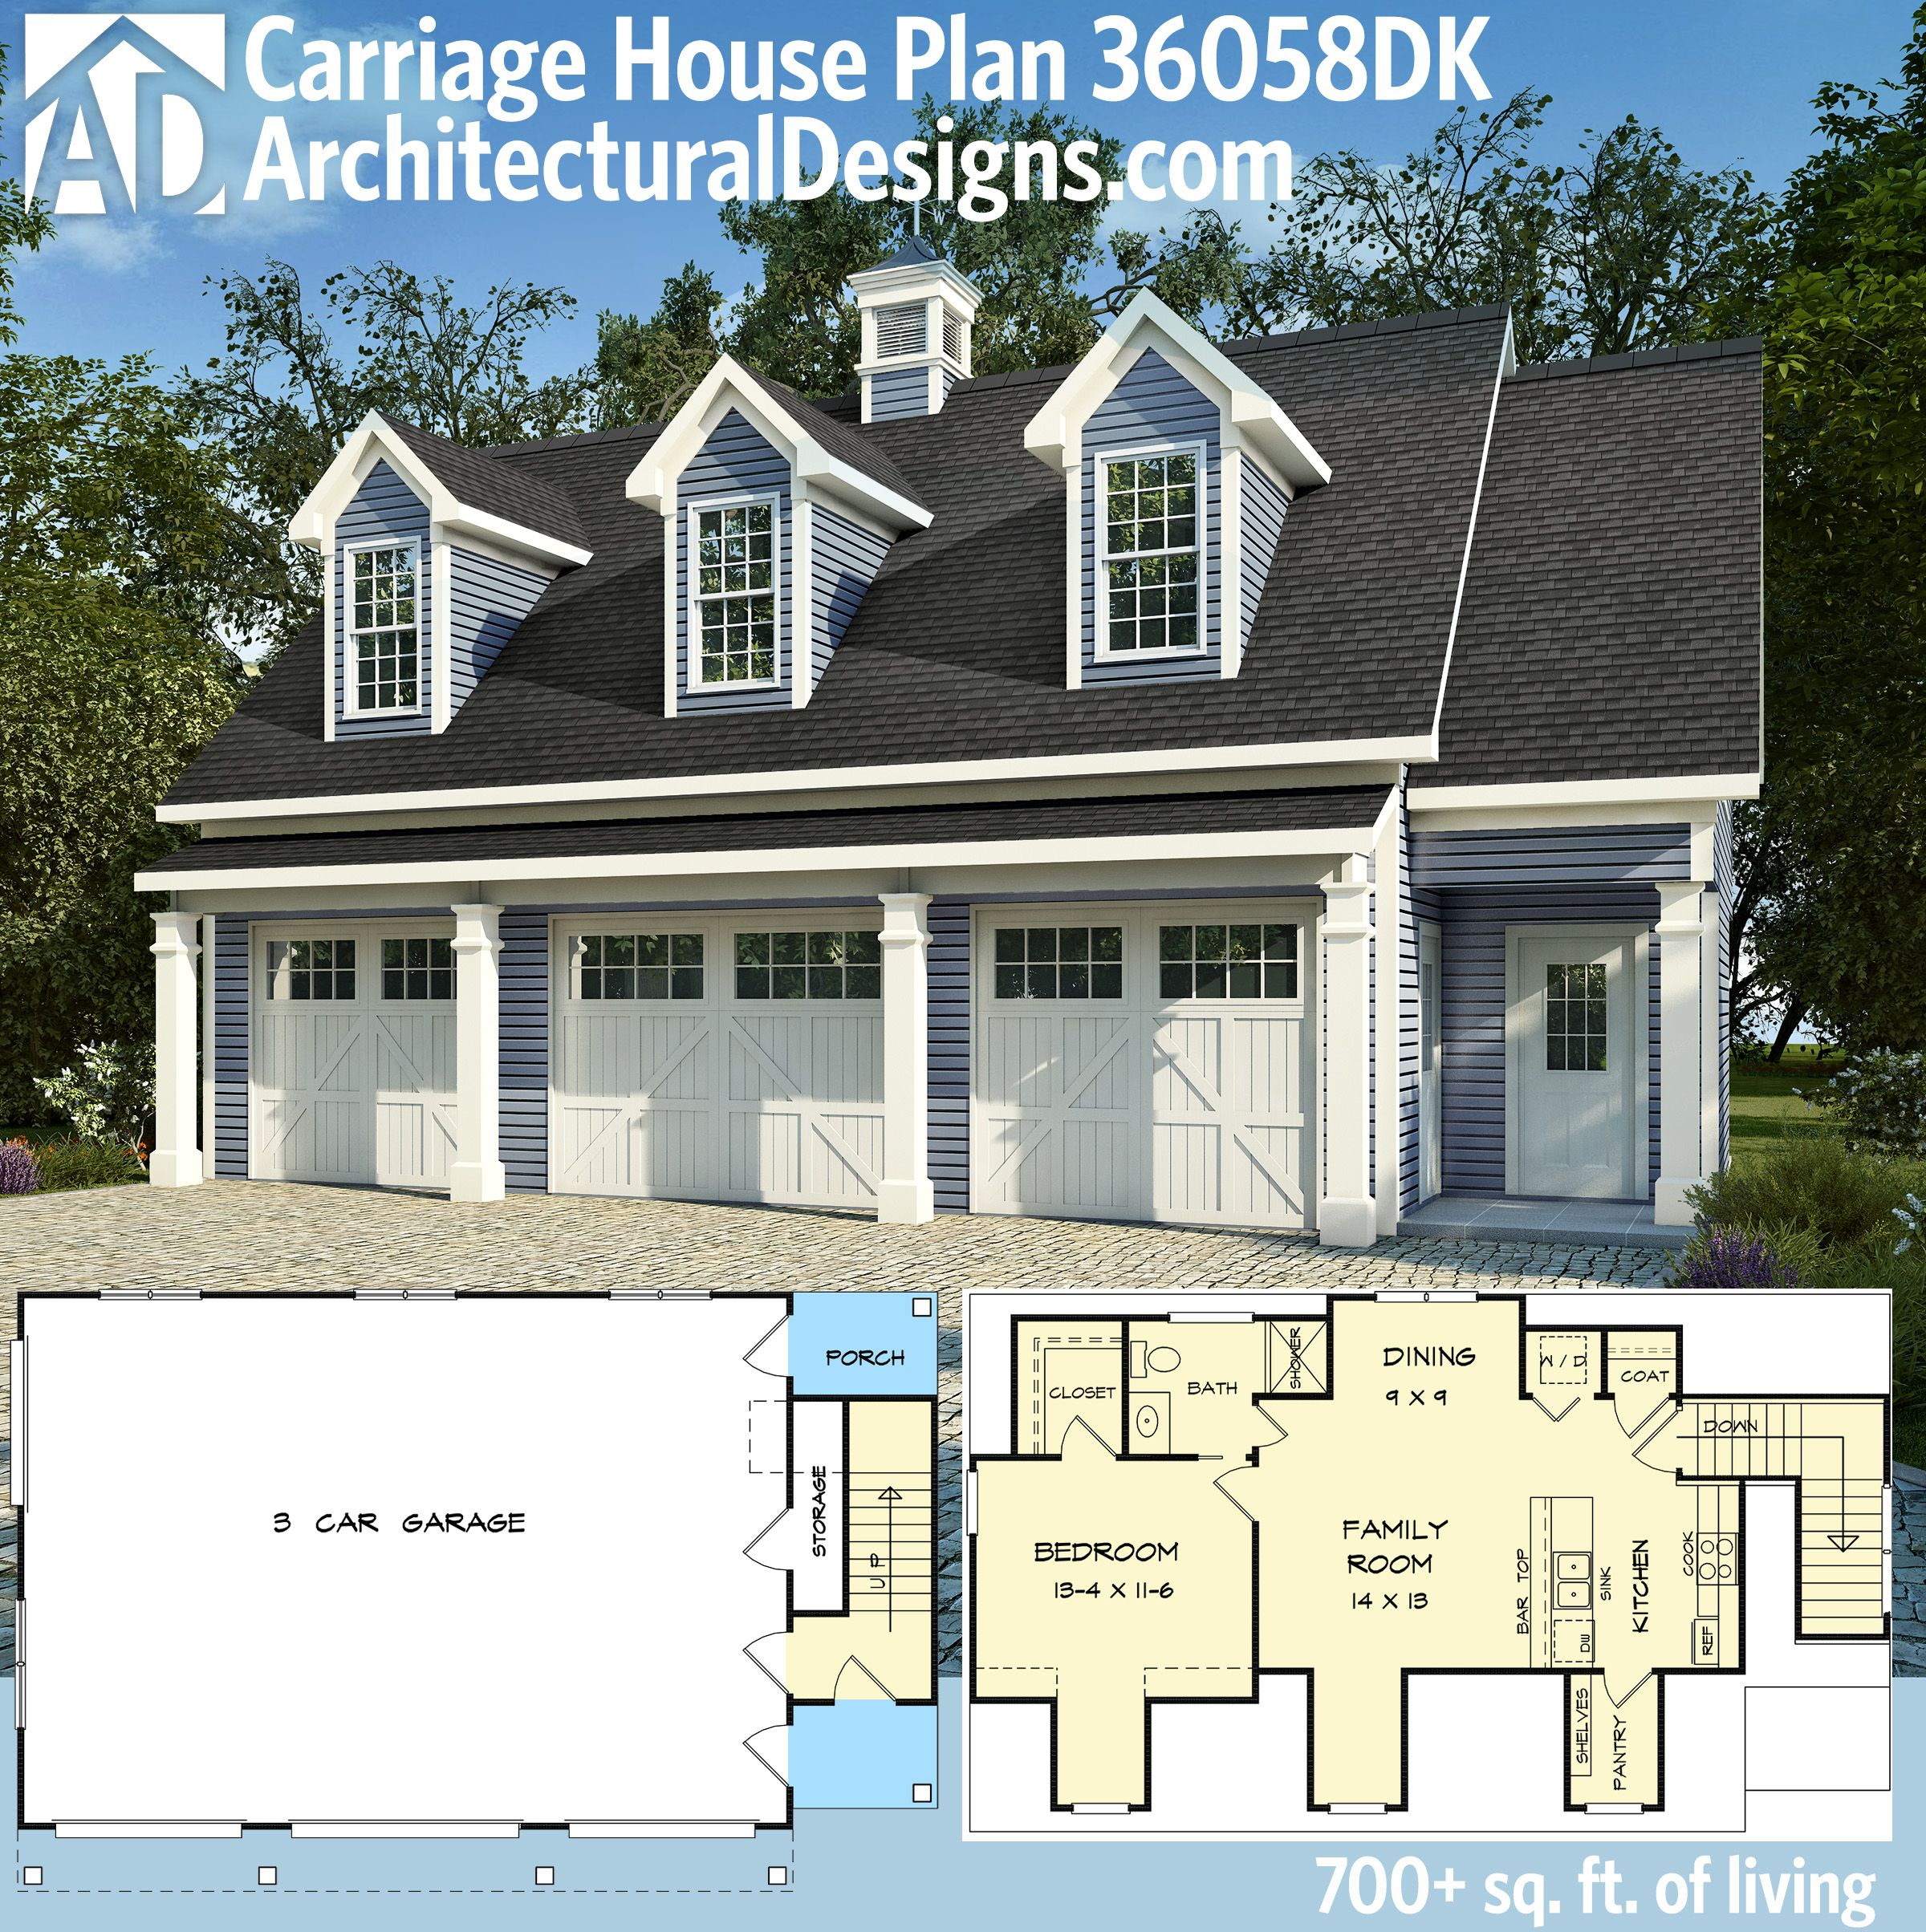 Plan 36058dk 3 car carriage house plan with 3 dormers for Carriage house plans cost to build